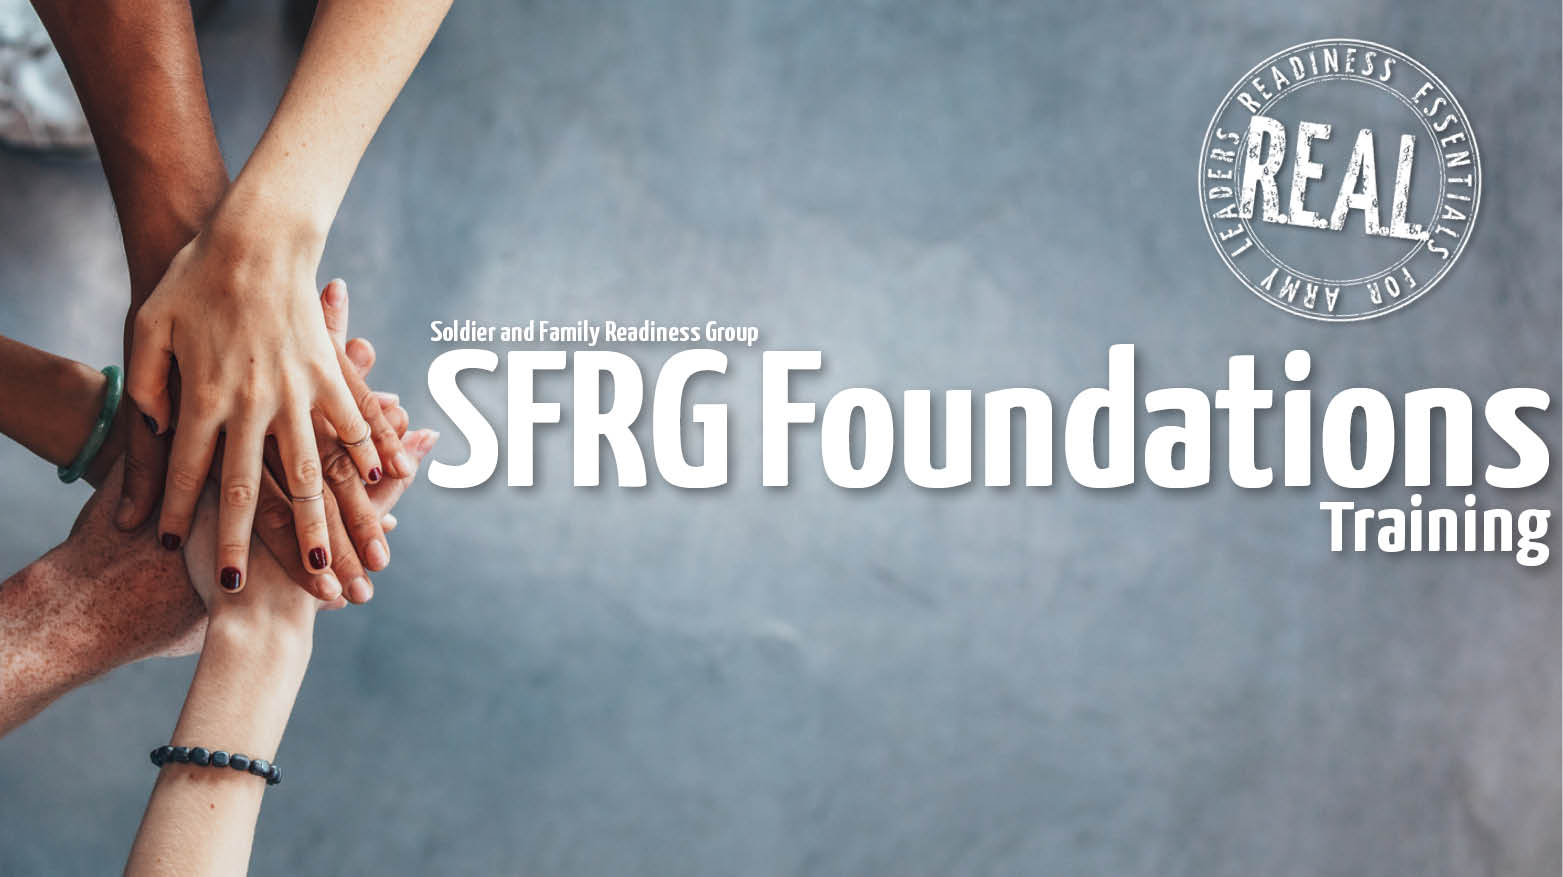 R.E.A.L. Family Readiness Group (FRG) Foundations Training